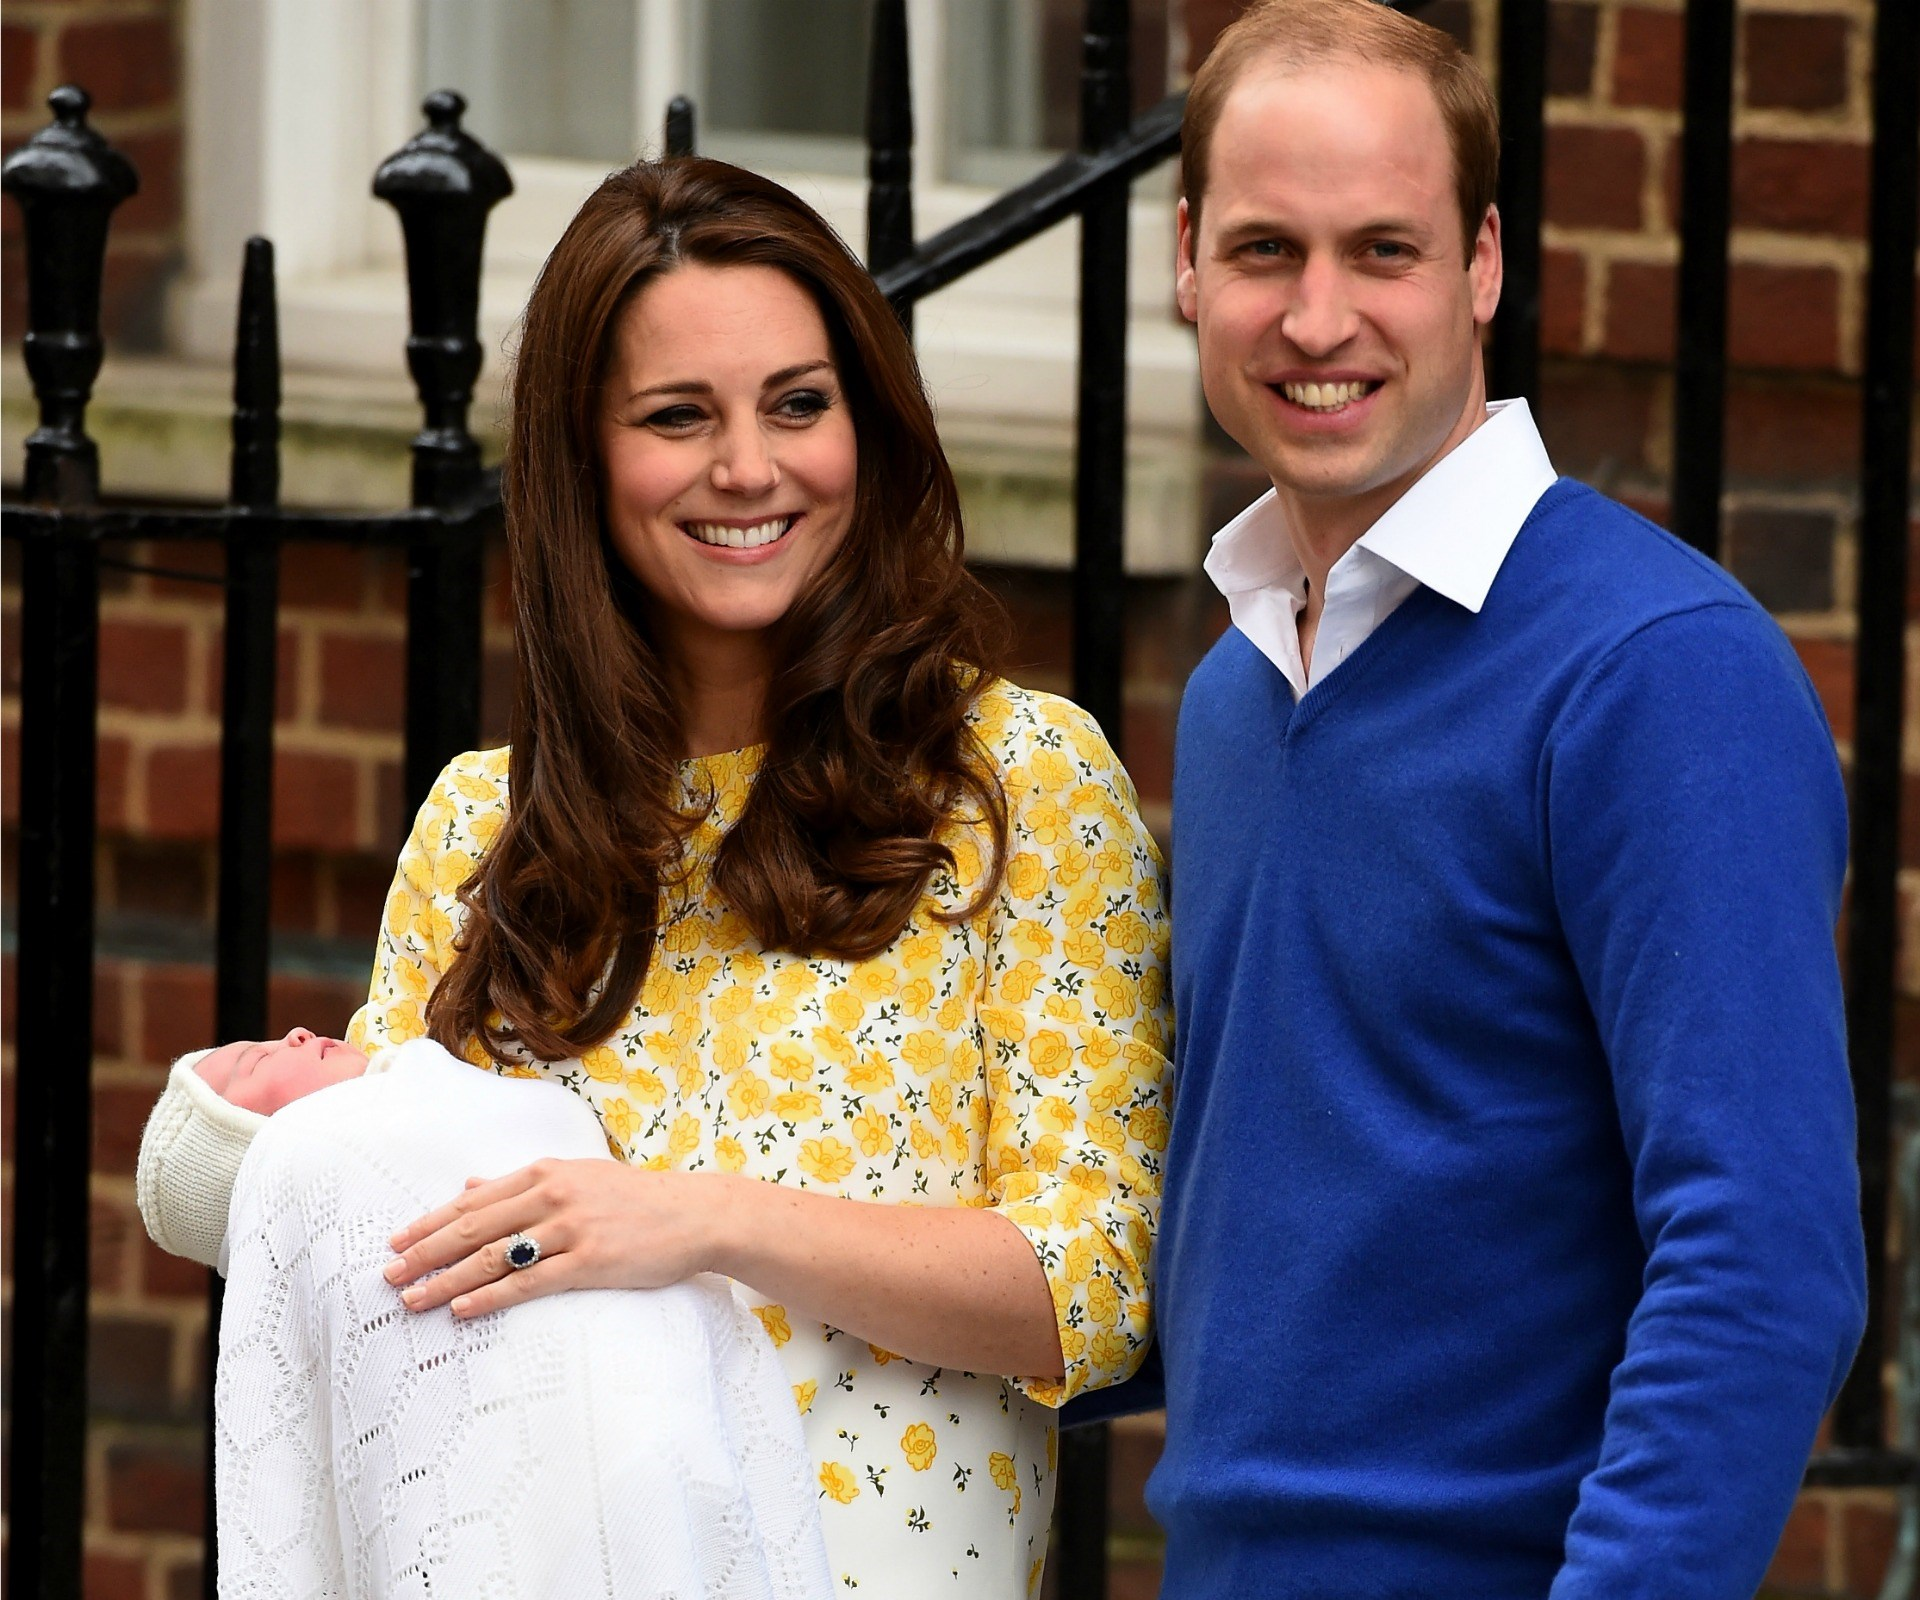 Cambridges' first appearance as a family of four